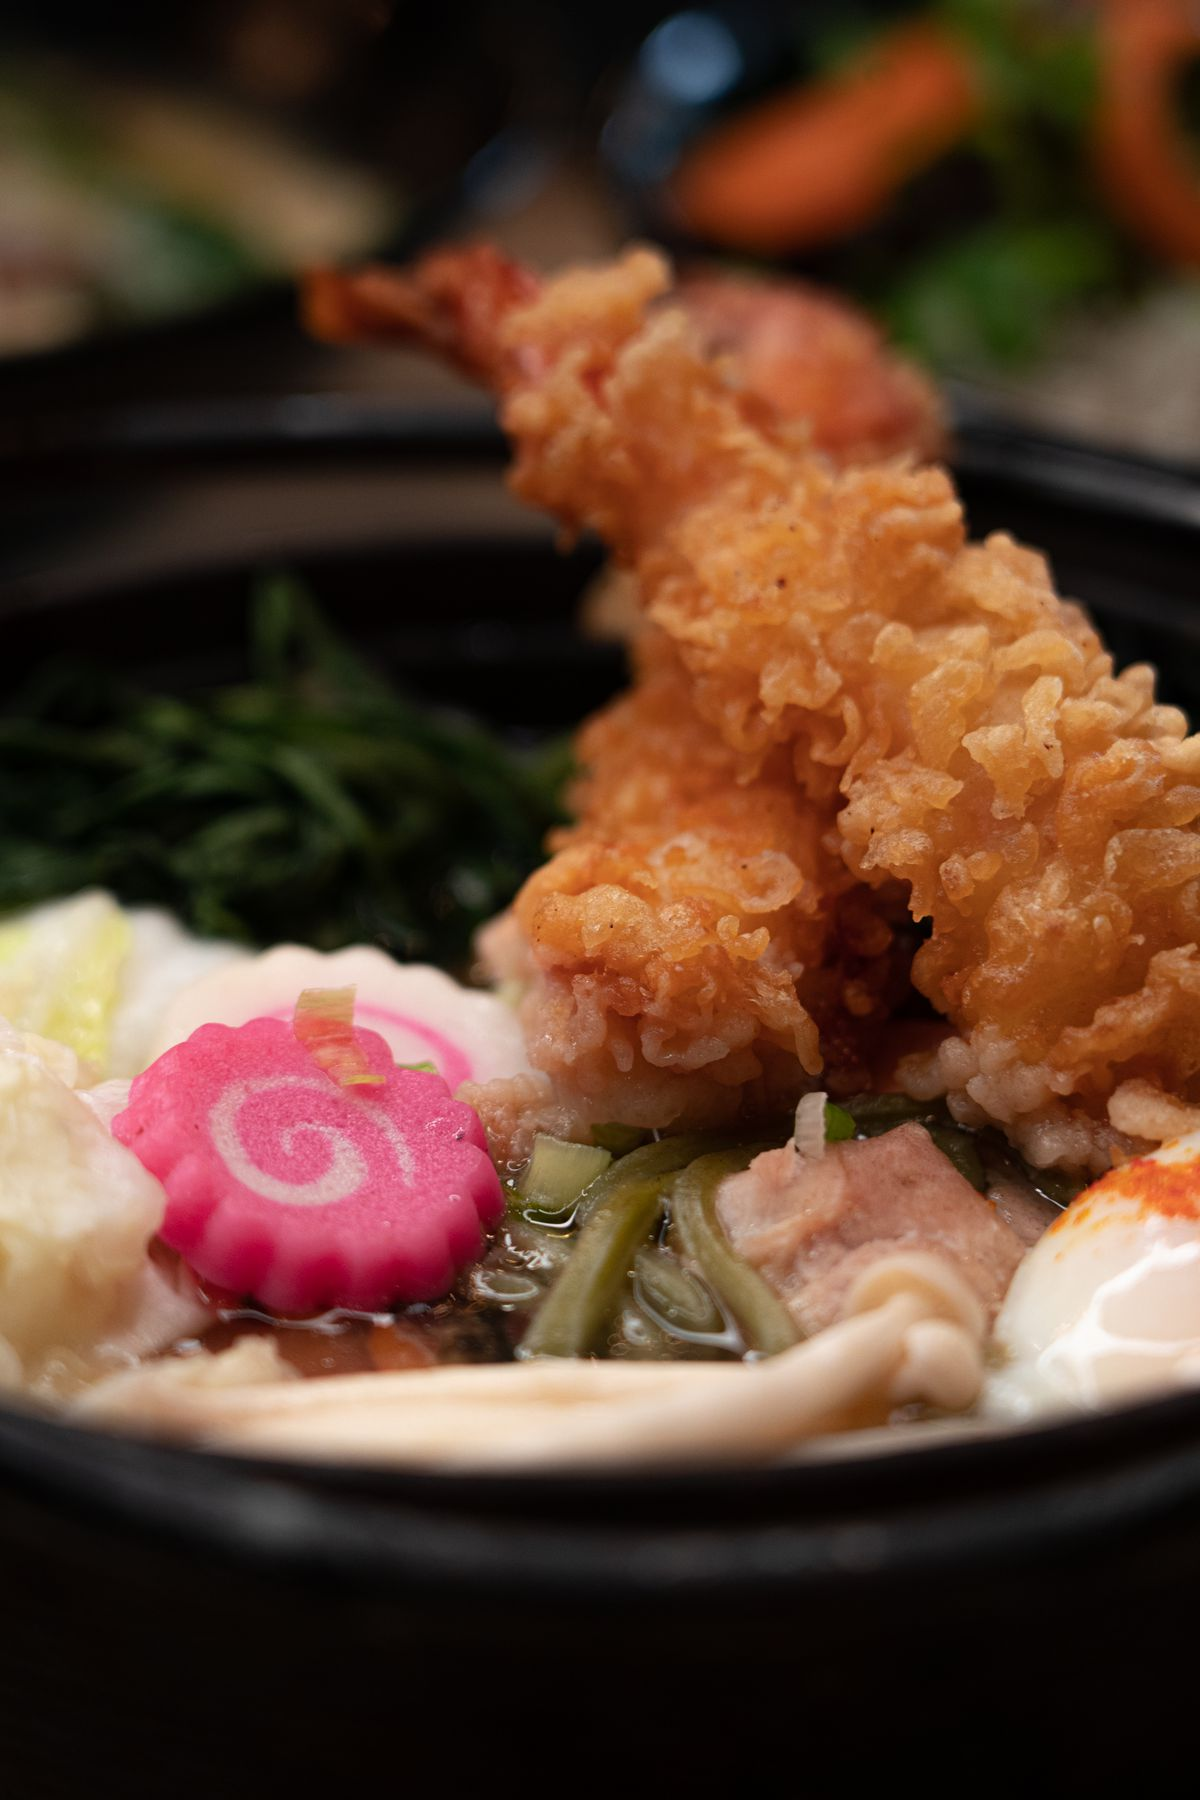 A close-up photograph of two crispy pieces of tempura, which sit atop a bowl of broth, greens, and other ingredients